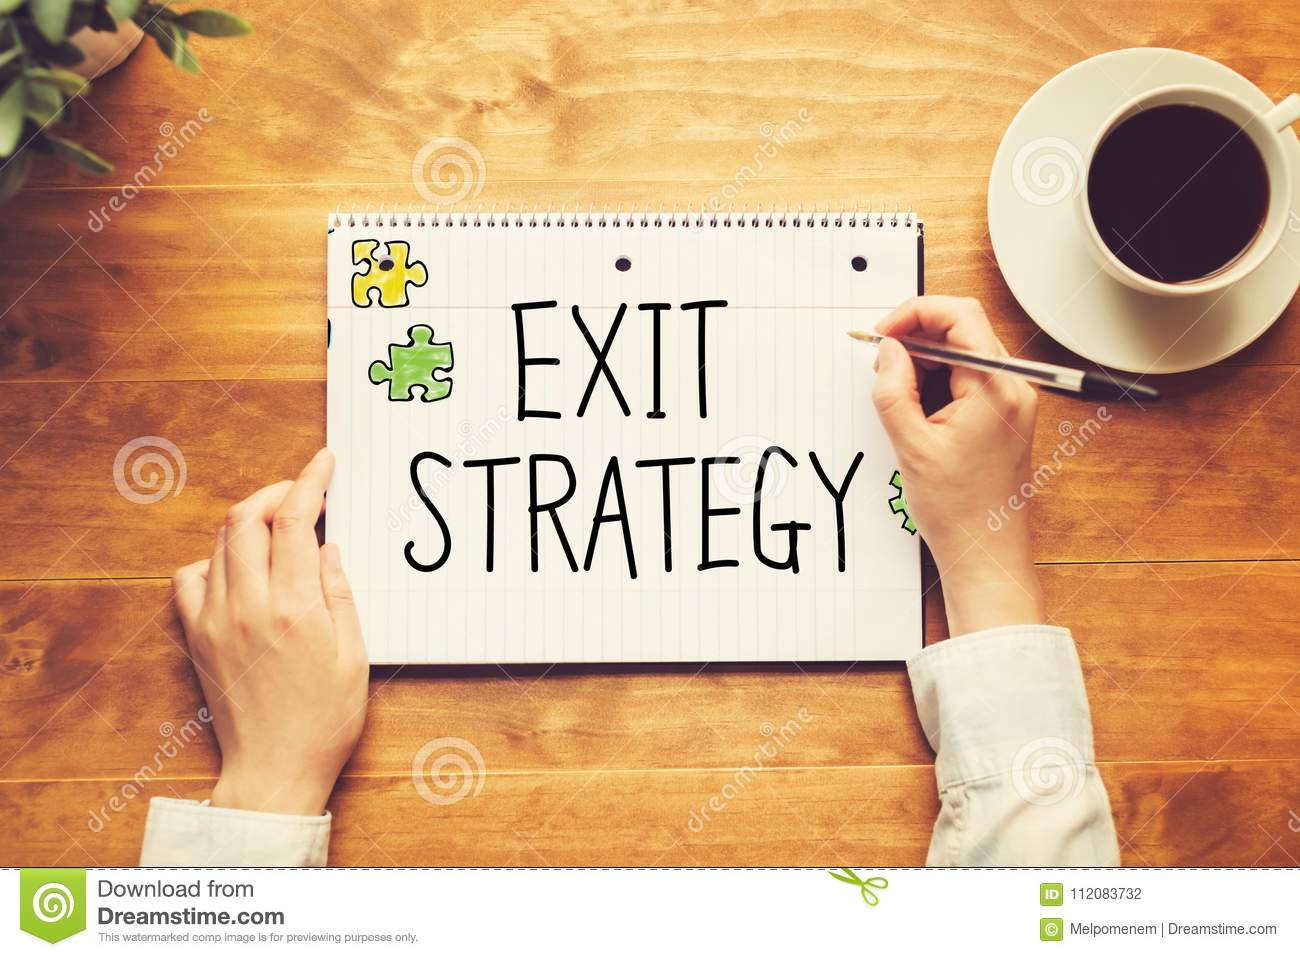 Exit Strategy text with a person holding a pen